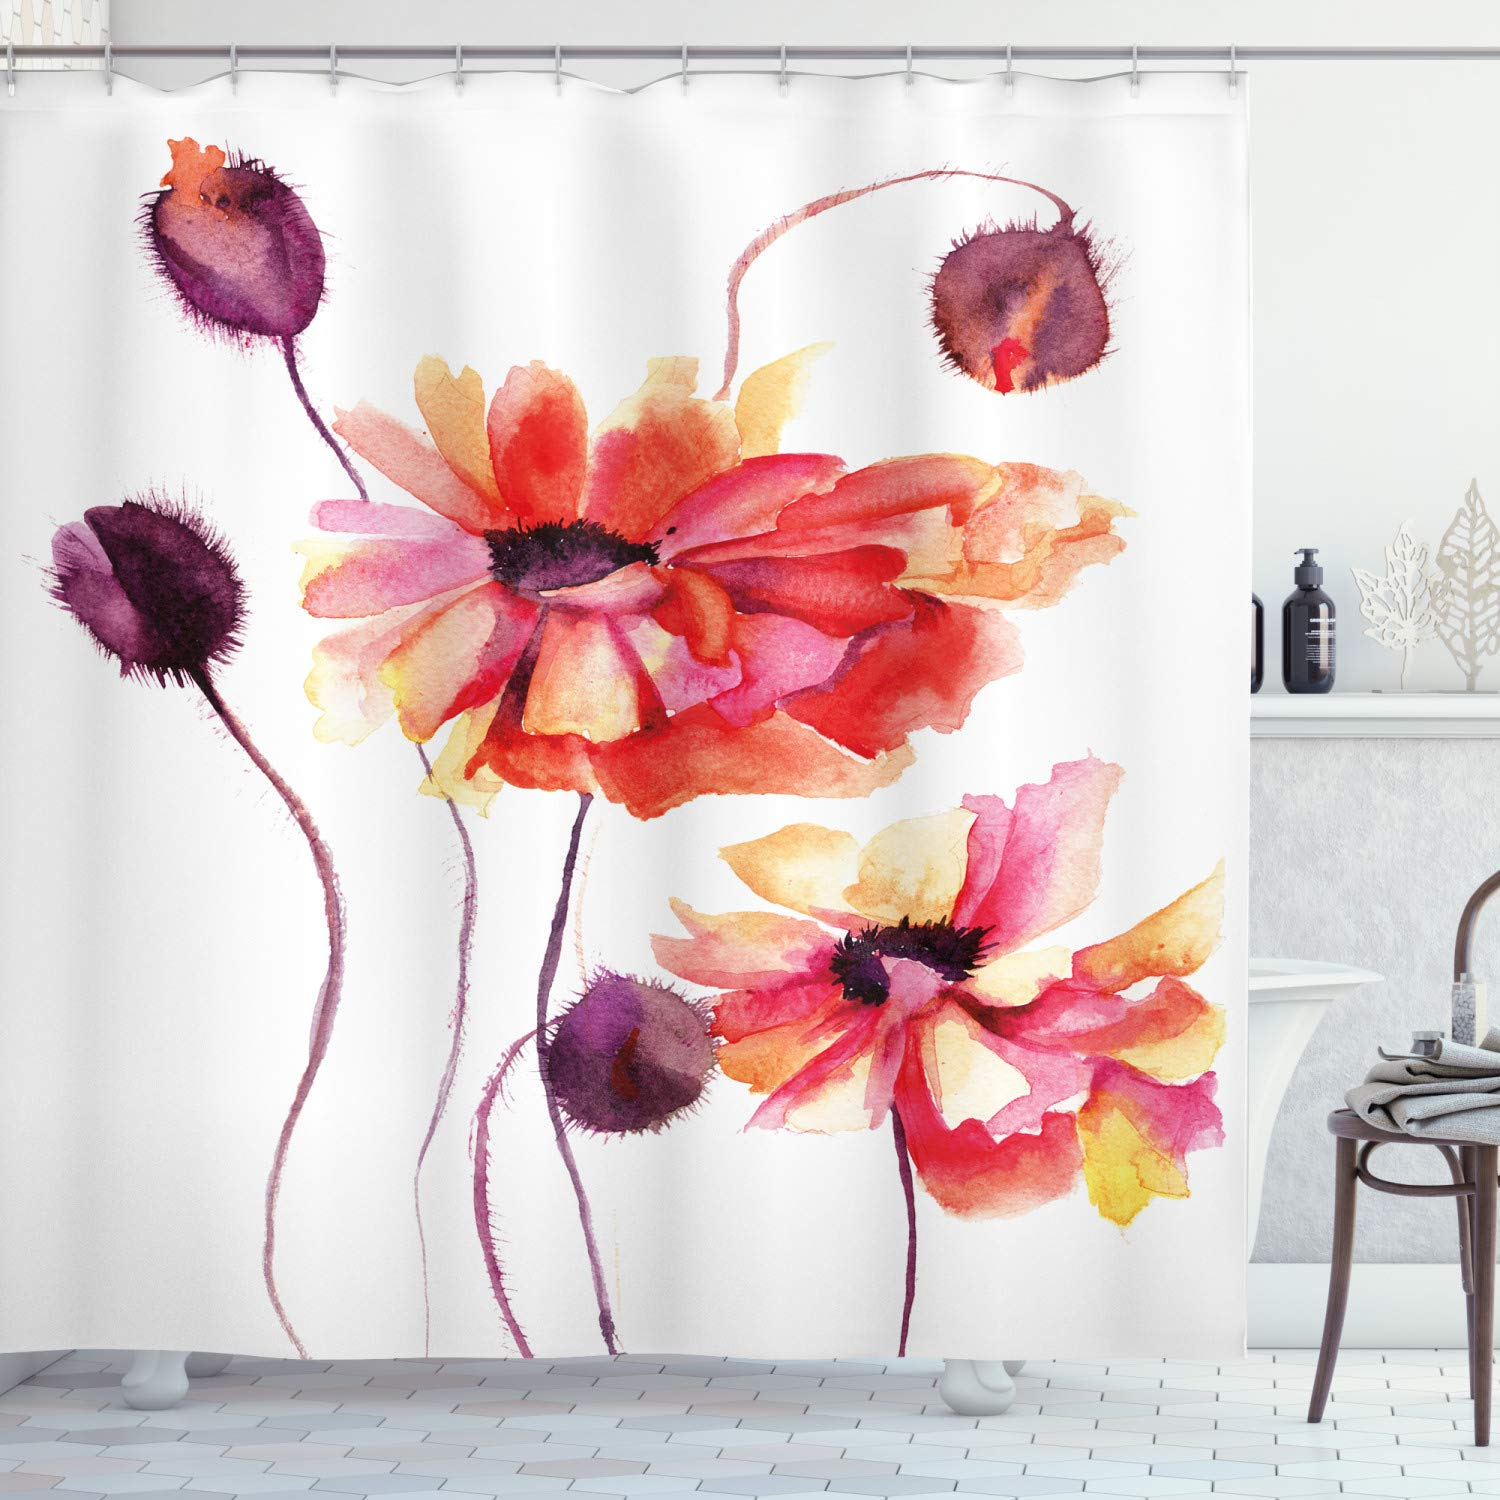 """Ambesonne Floral Shower Curtain, Watercolor Painting Poppy Flowers and Buds Spring Nature Design, Cloth Fabric Bathroom Decor Set with Hooks, 84"""" Long Extra, Peach Scarlet"""